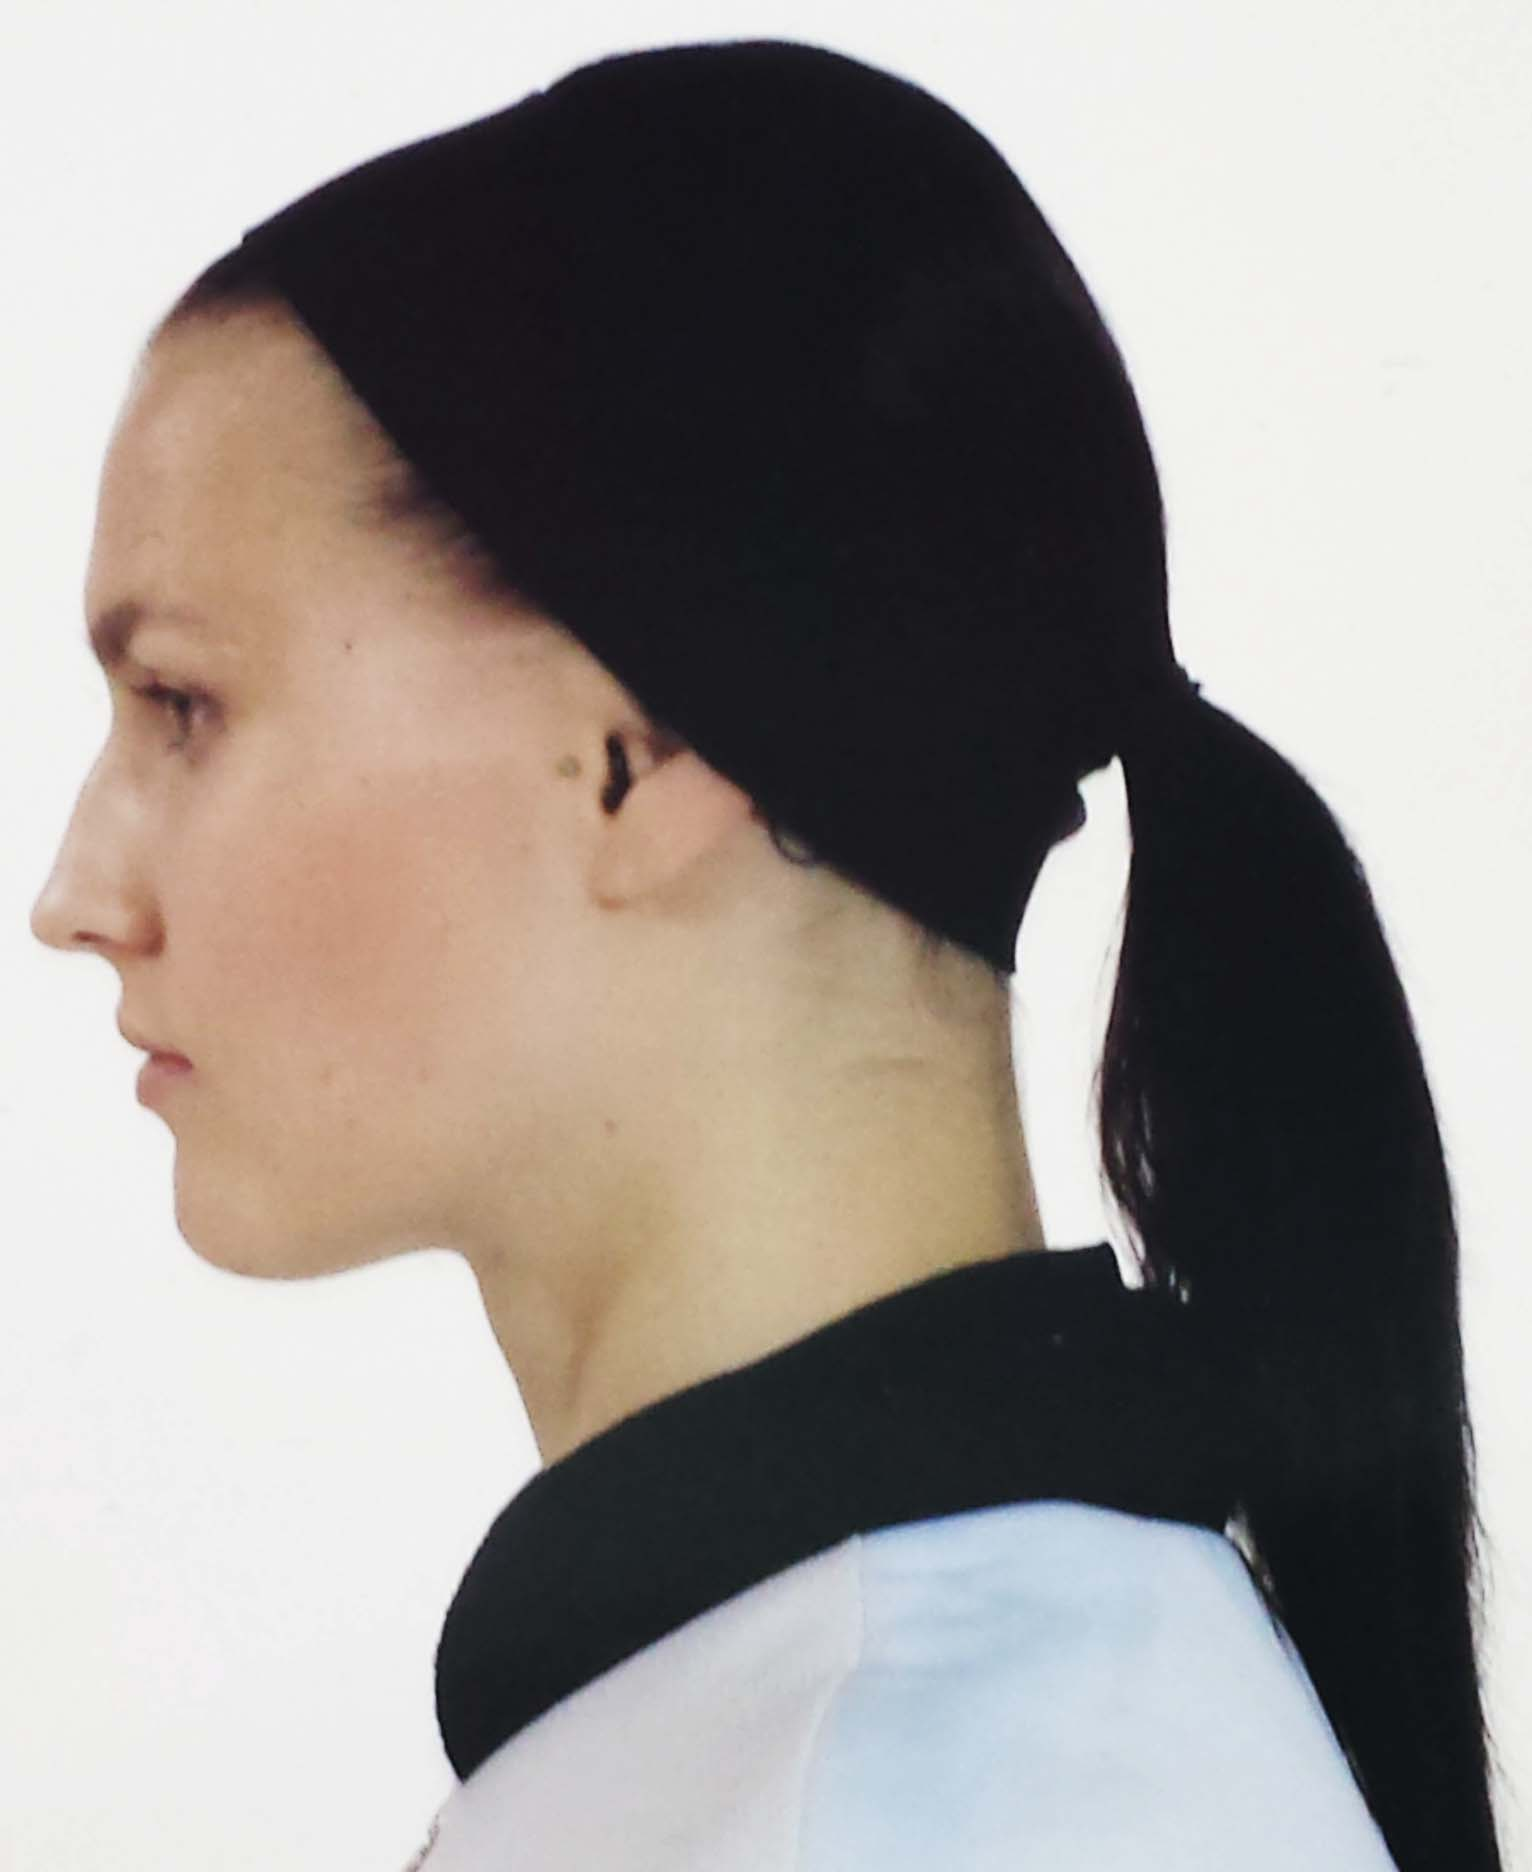 The finishing hair look was clean, modern and uniform for all models.